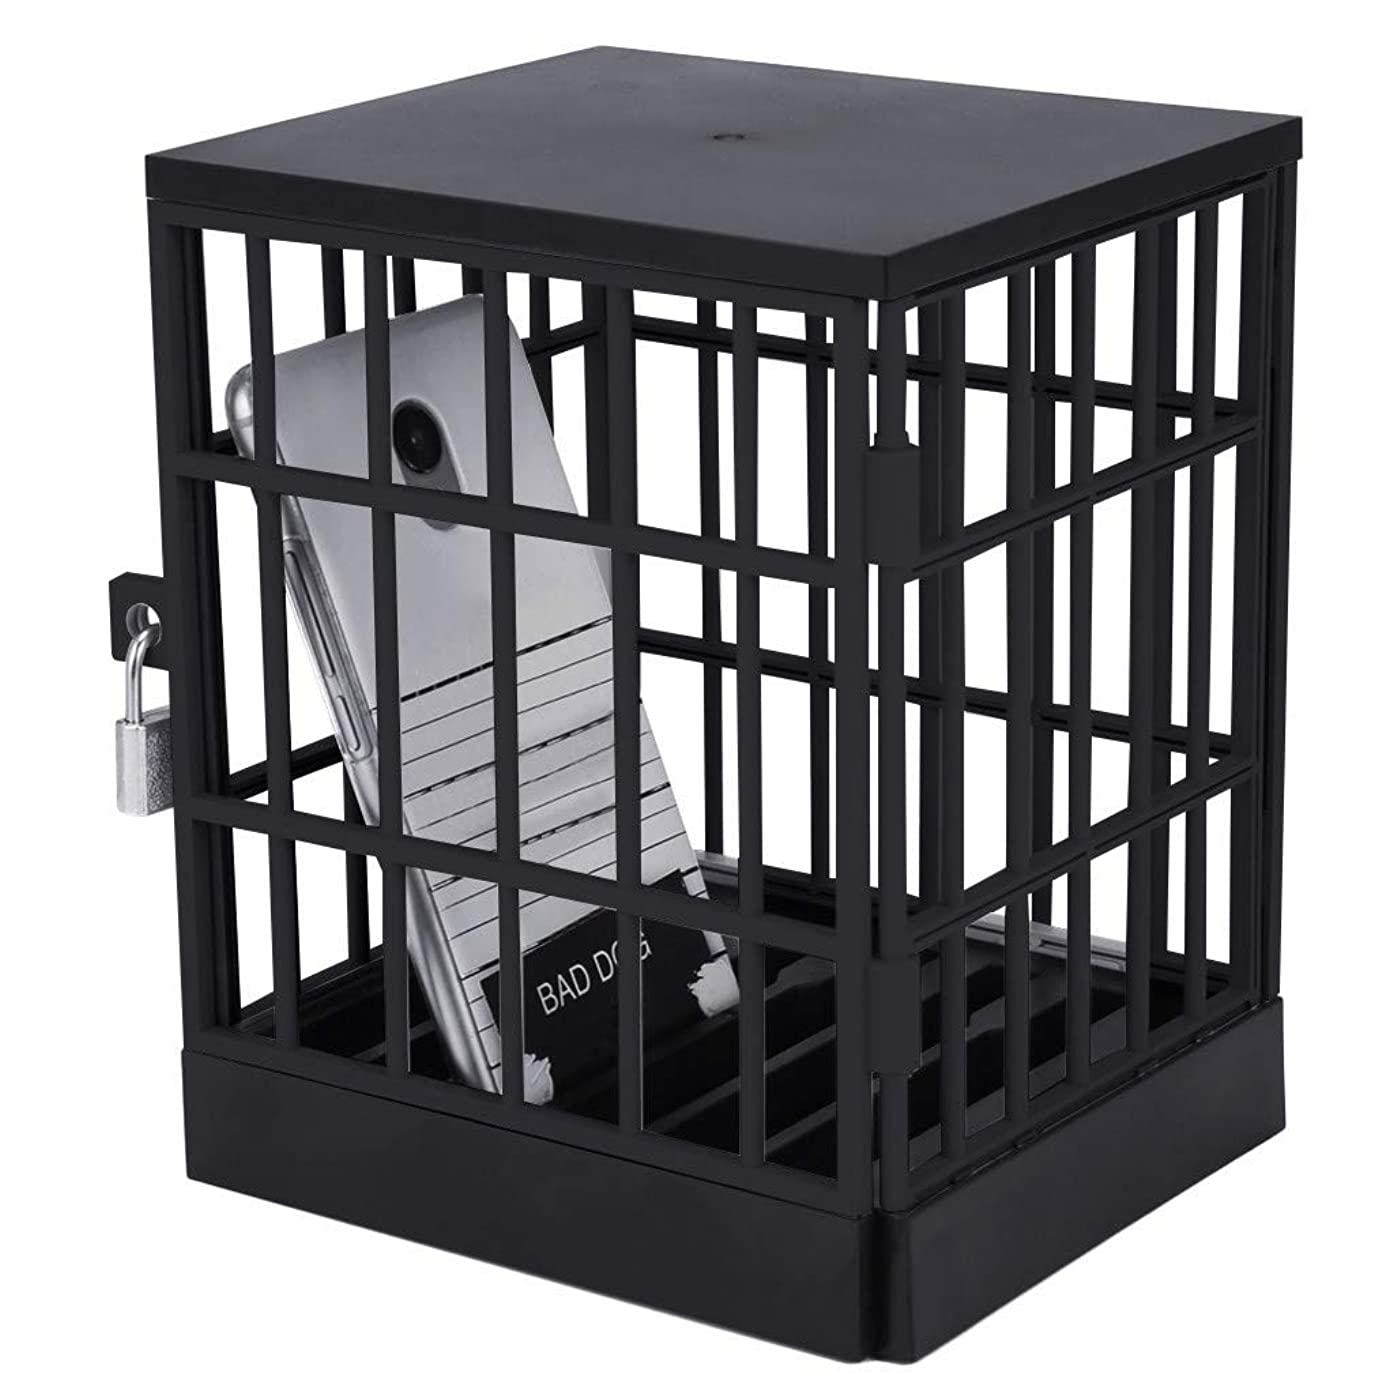 Denzar Creative Mobile Phone Jail Cell Prison, Safe Smartphone Lock-Up Box Home Table Office Gadget for Better Interaction Communication (Include Key and Lock) (Black)